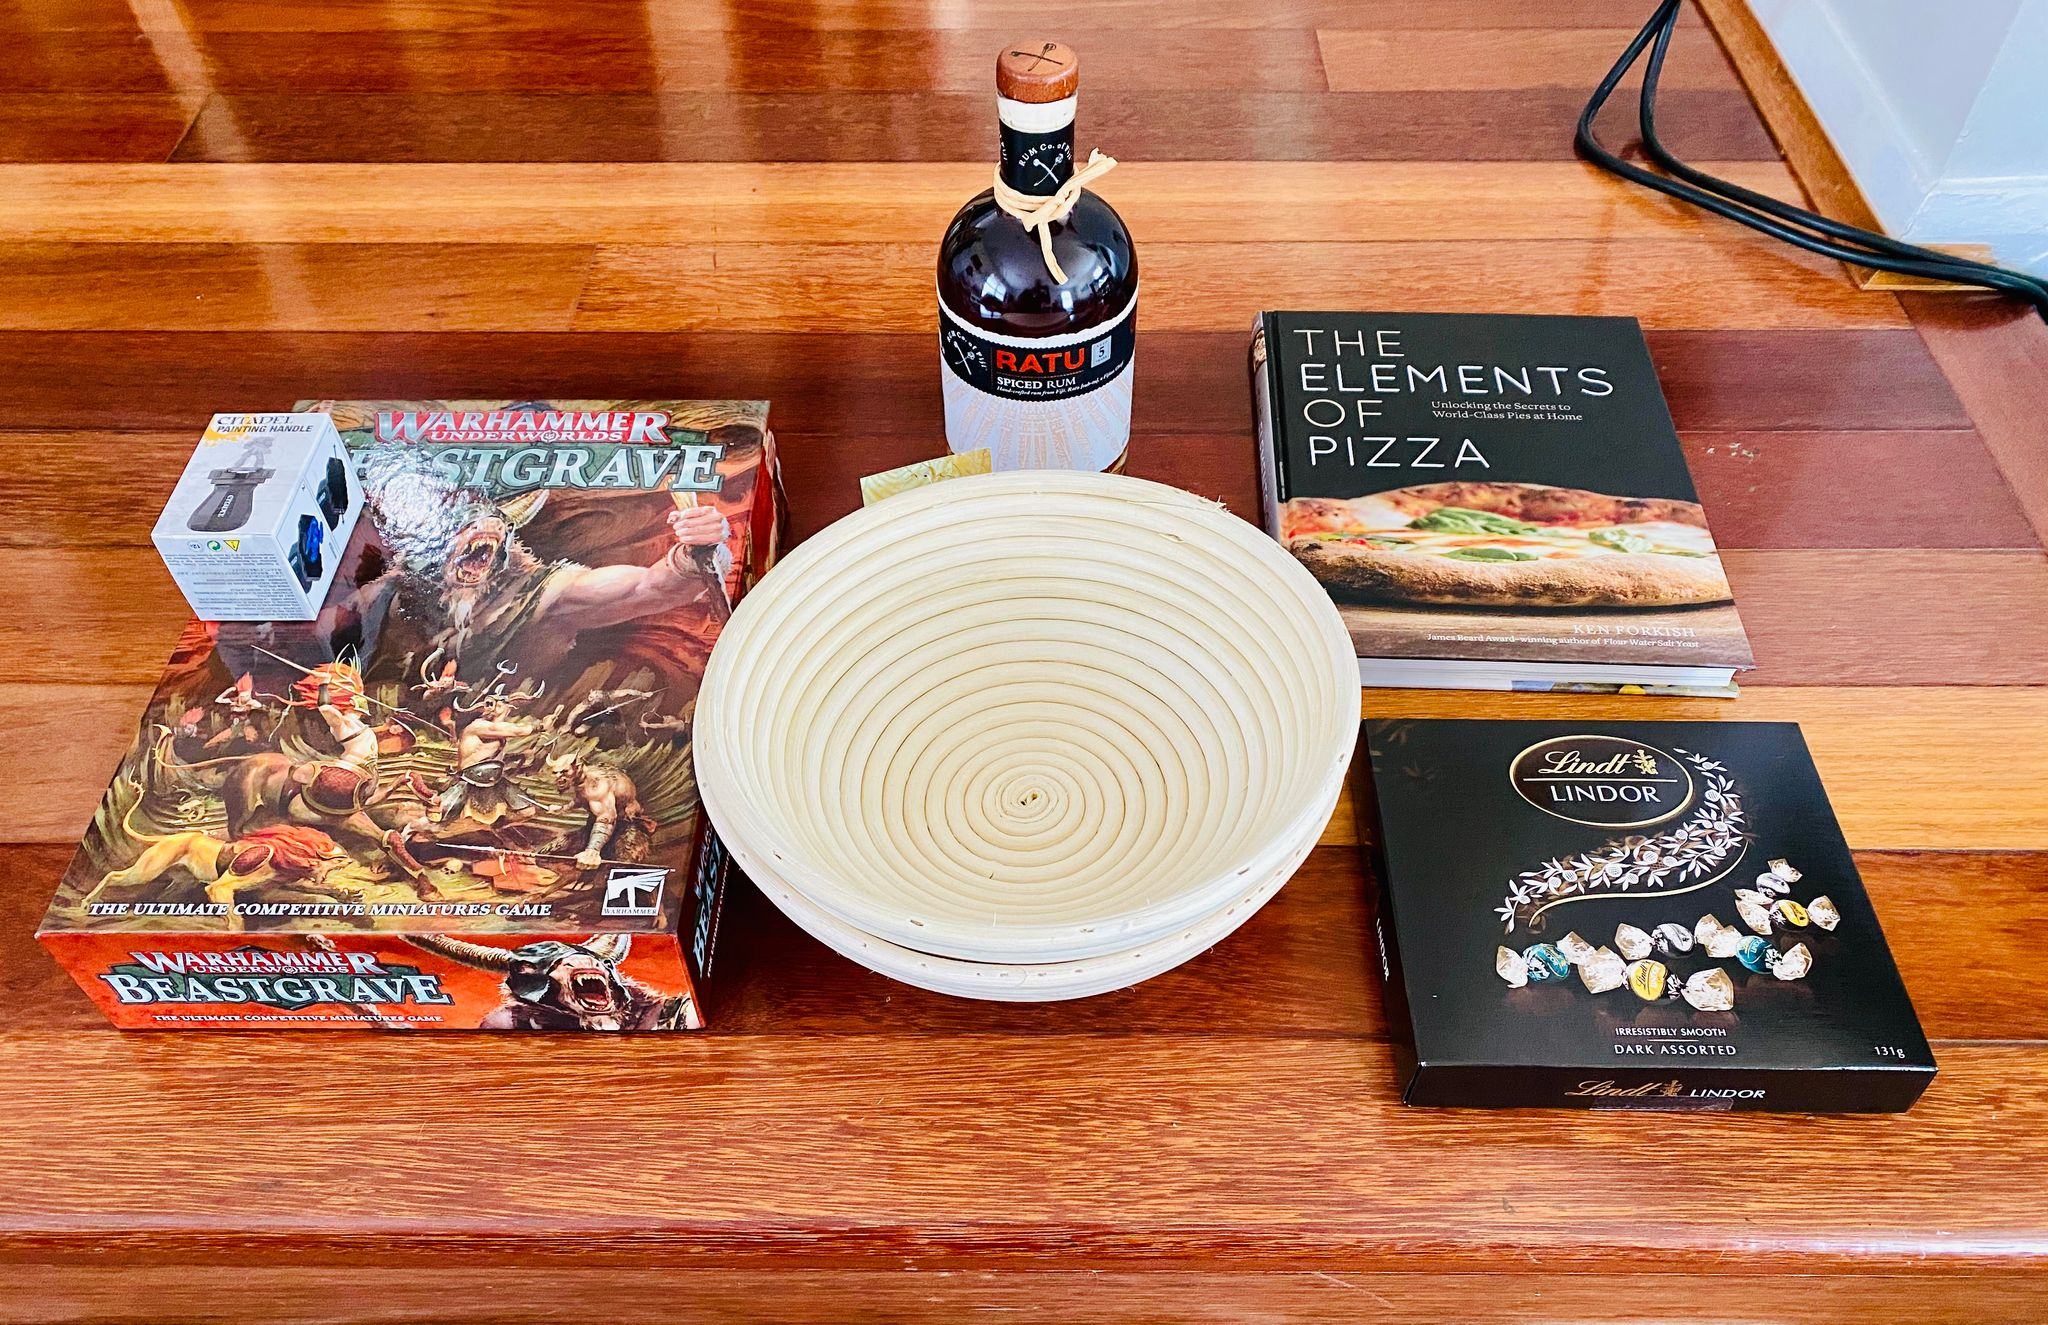 "A photo of Warhammer Underworlds: Beastgrave, two bread proofing baskets, a bottle of Fijian rum, a box of Lindt dark chocolate balls, and a book ""The Elements of Pizza""."